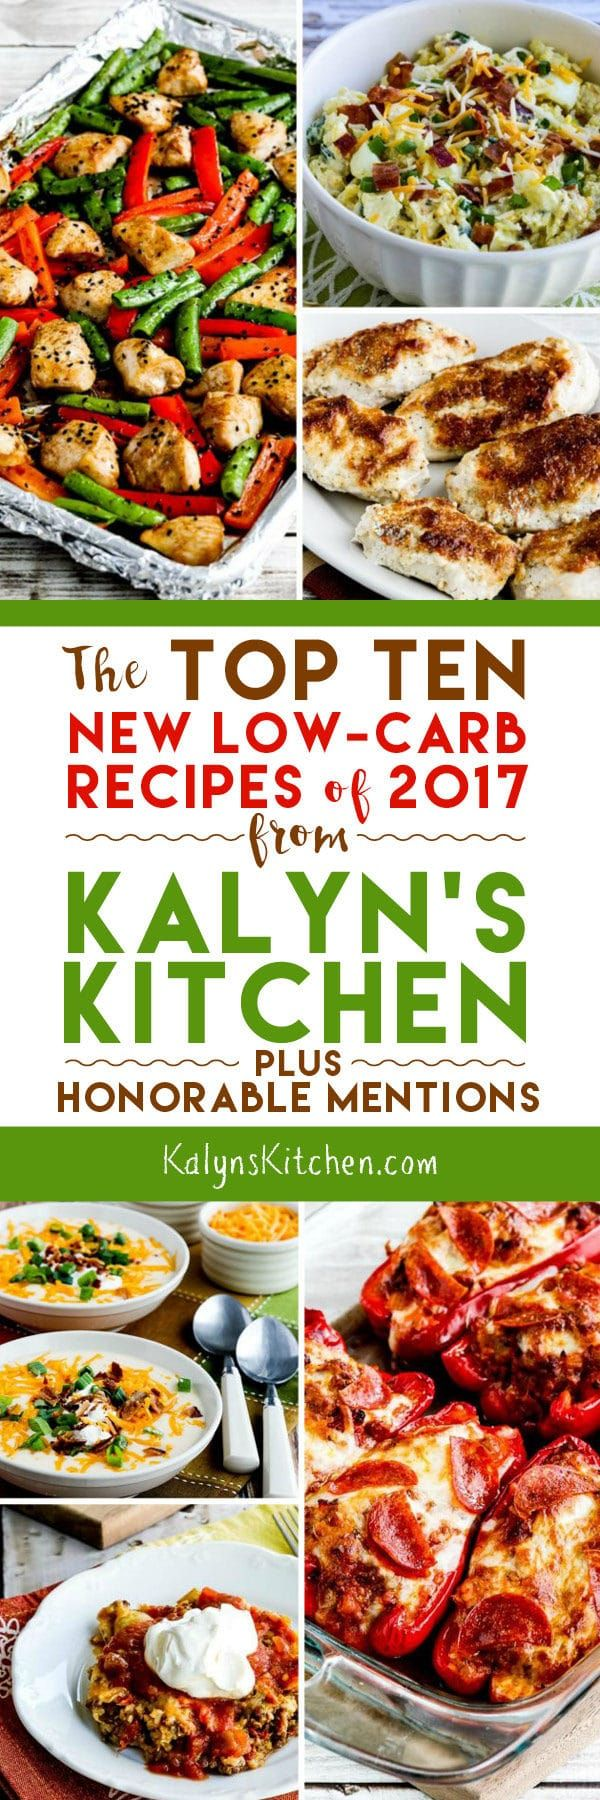 Out of all the new low-carb recipes I posted in 2017, here are my picks for The Top Ten New Low-Carb Recipes of 2017 (plus Honorable Mentions)!  All these new recipes are winners; hope you enjoy trying some! [found on KalynsKitchen.com] #LowCarbRecipes #Bestof2017 #BestLowCarbRecipes